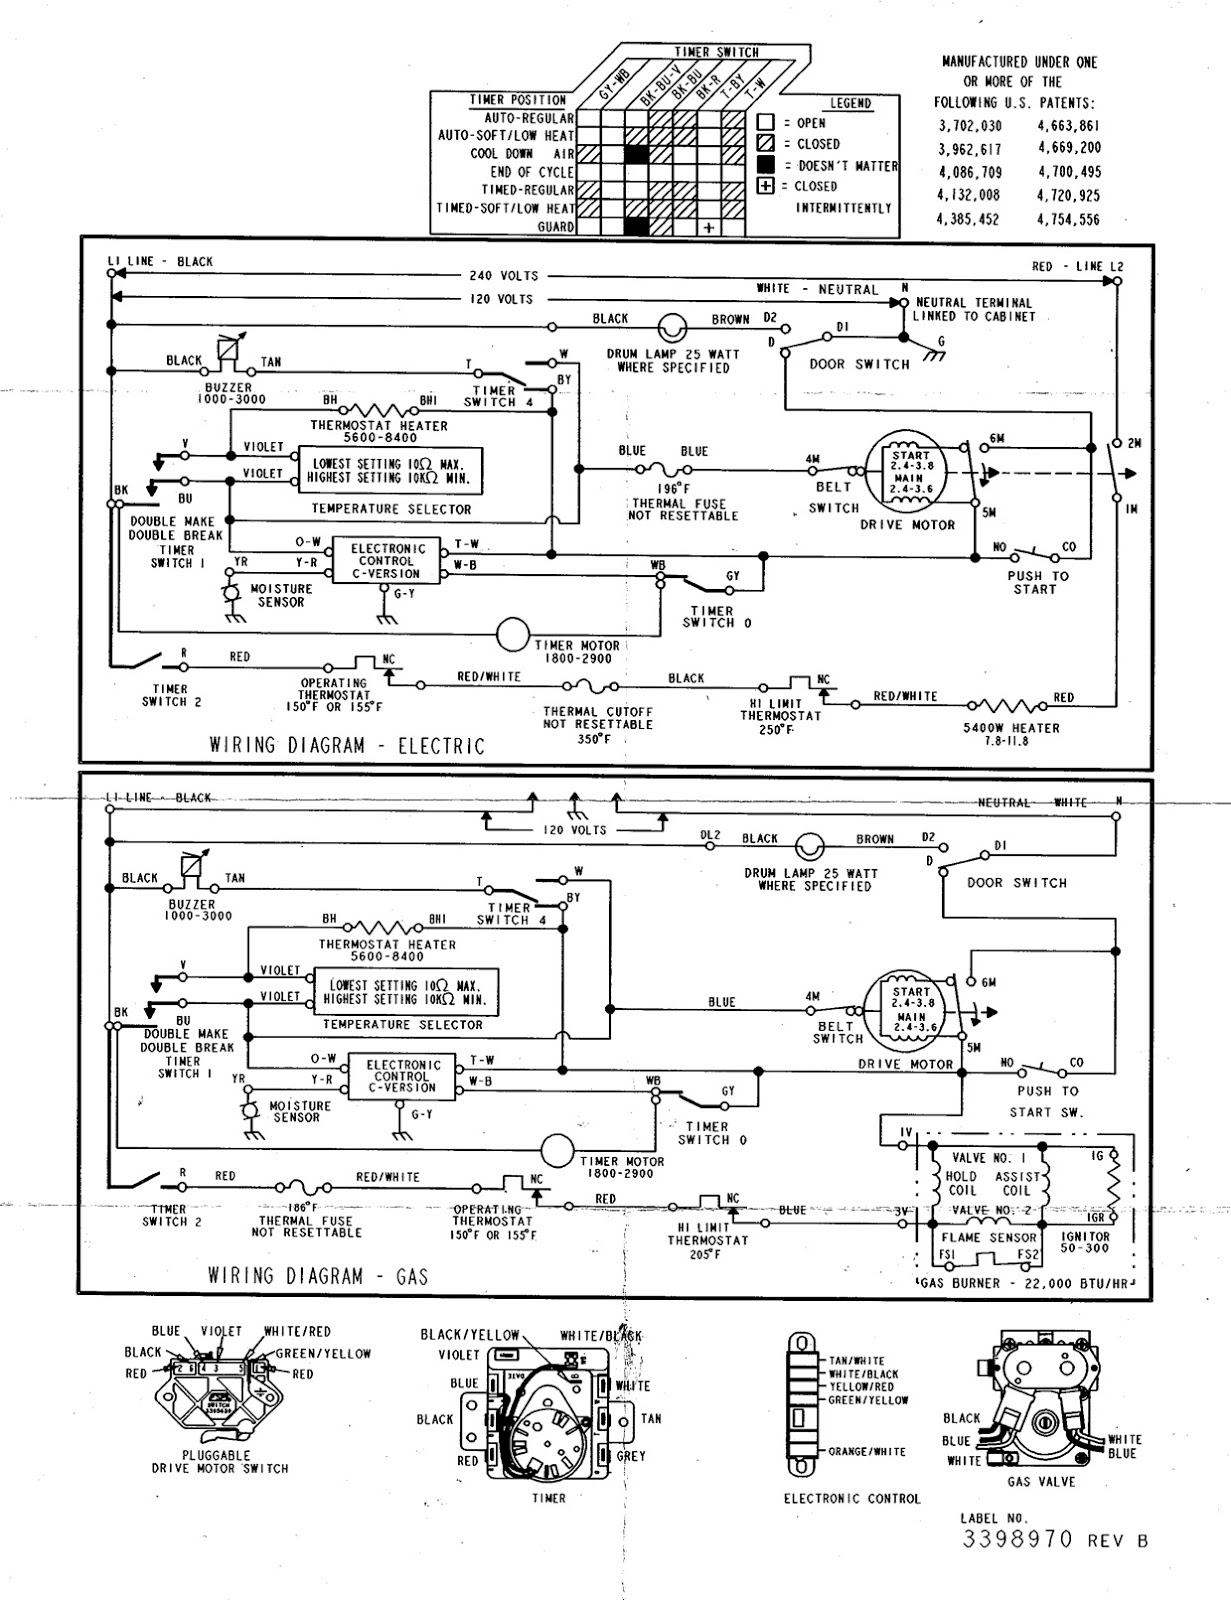 small resolution of schematic for kenmore 90 series model 110 76902693